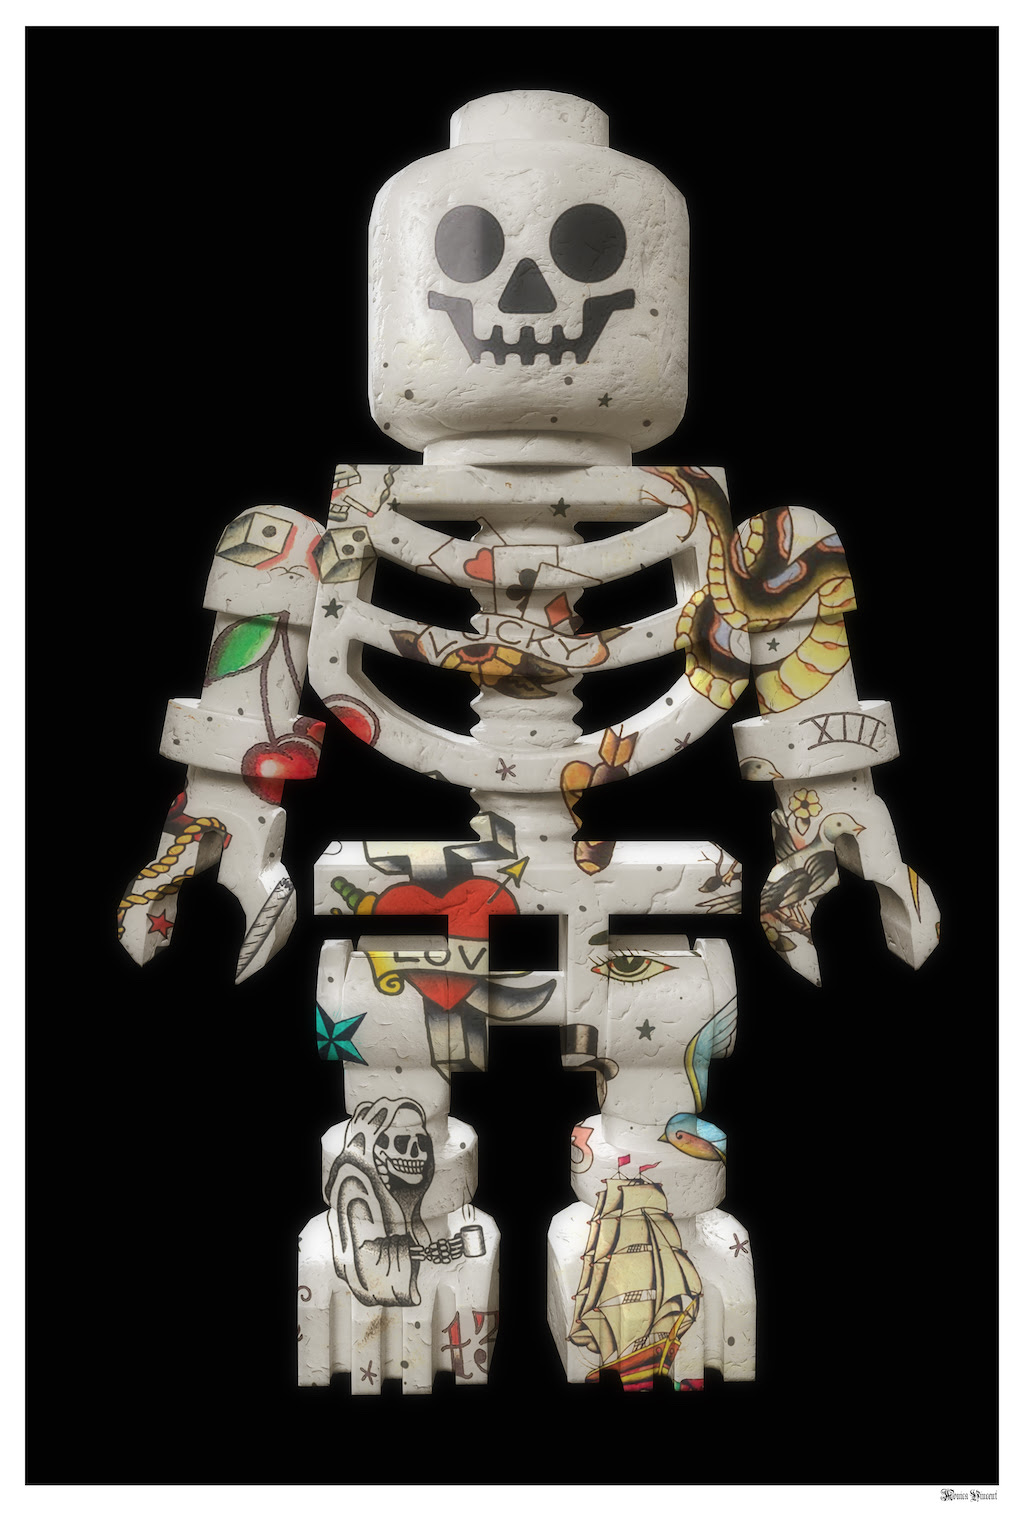 Lego Skeleton (Black Background) - Small - Framed by Monica Vincent